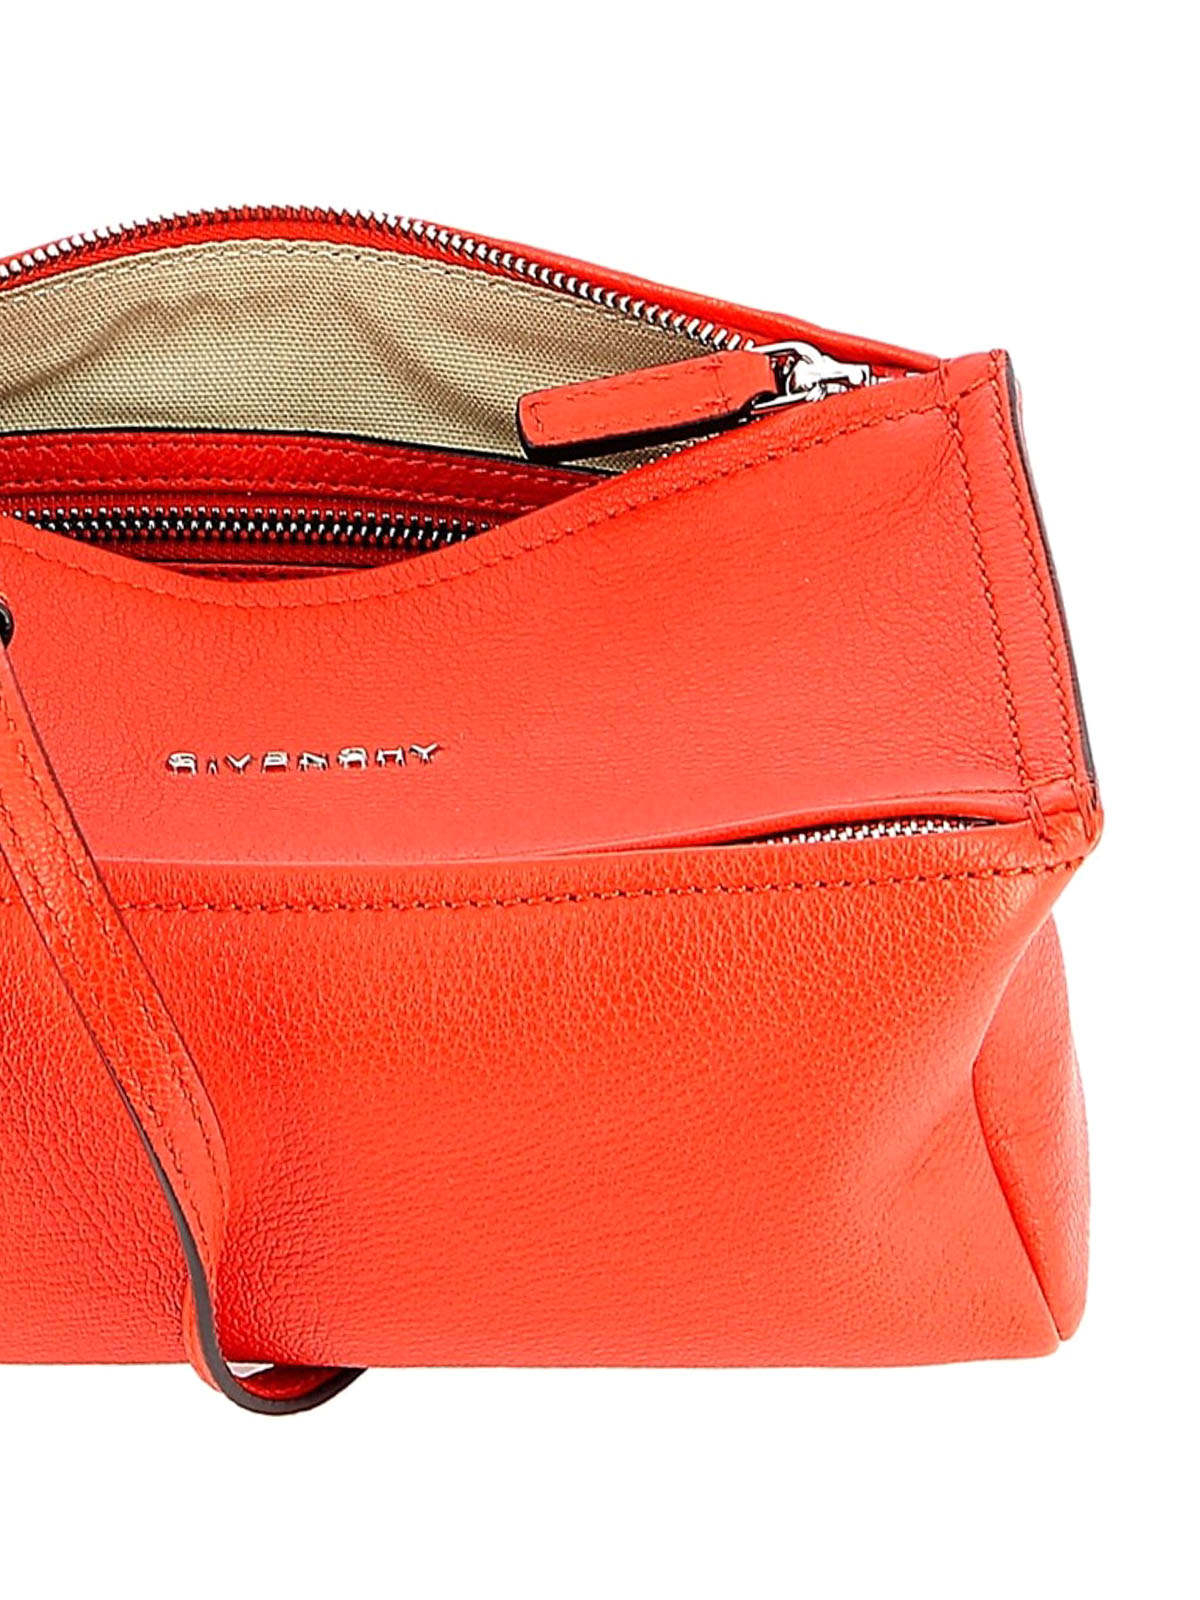 1c444f06d75b Givenchy - Pandora pop red leather mini messenger bag - cross body ...